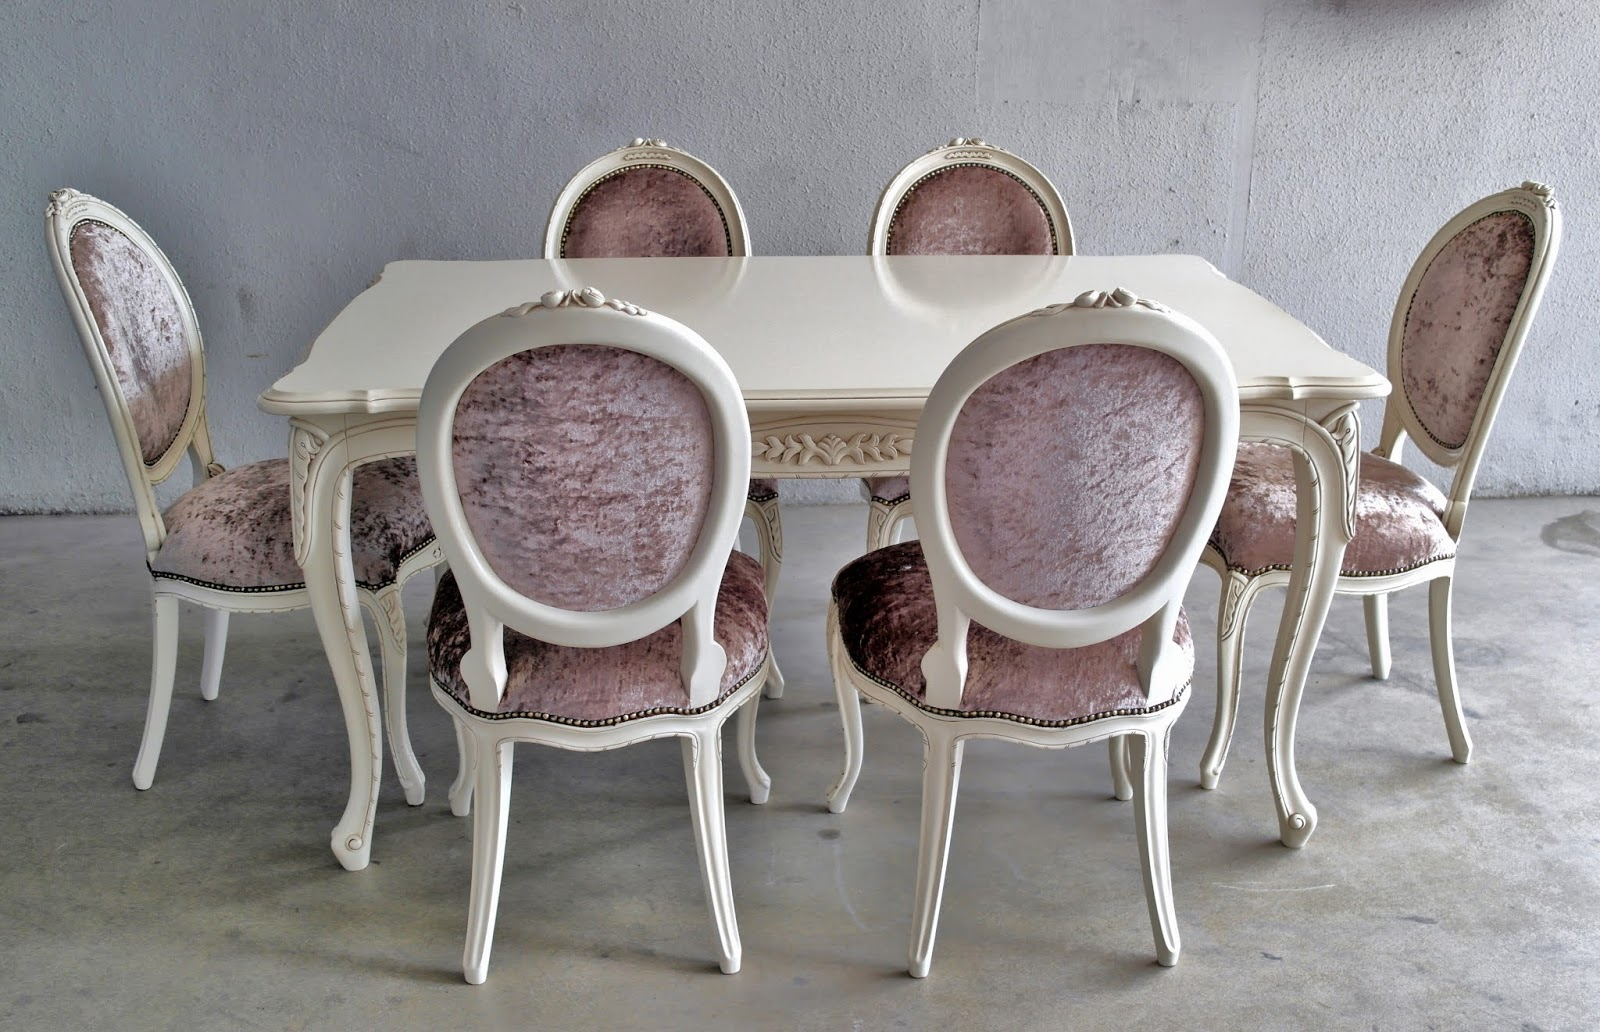 French dining table and chairs - French Dining Table In Ivory Finish And Soft Champange Upholstery